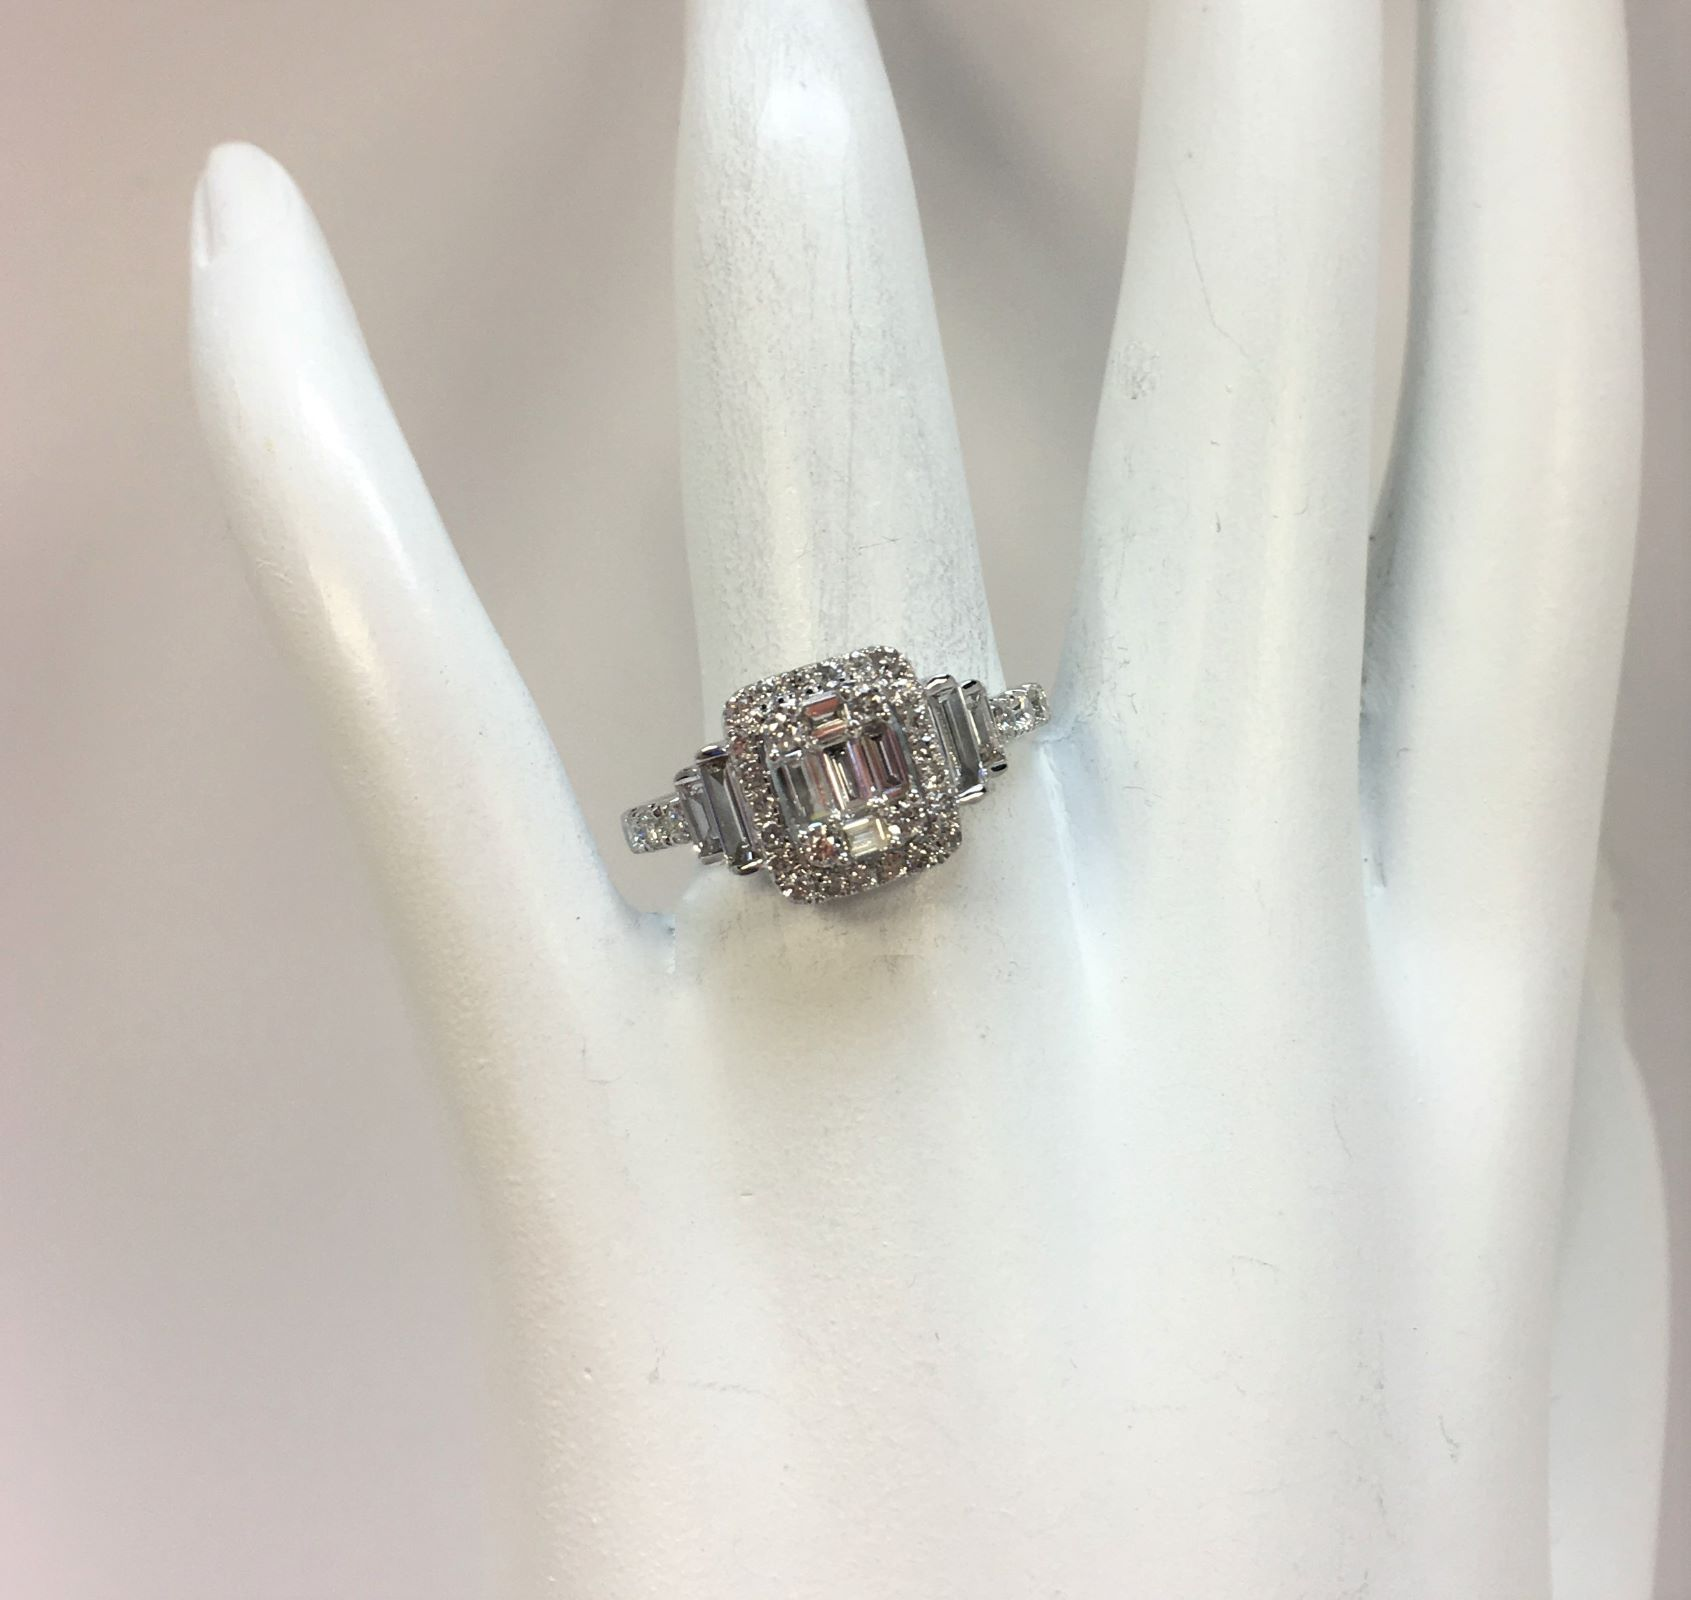 1 Carat Cluster Diamond Ring